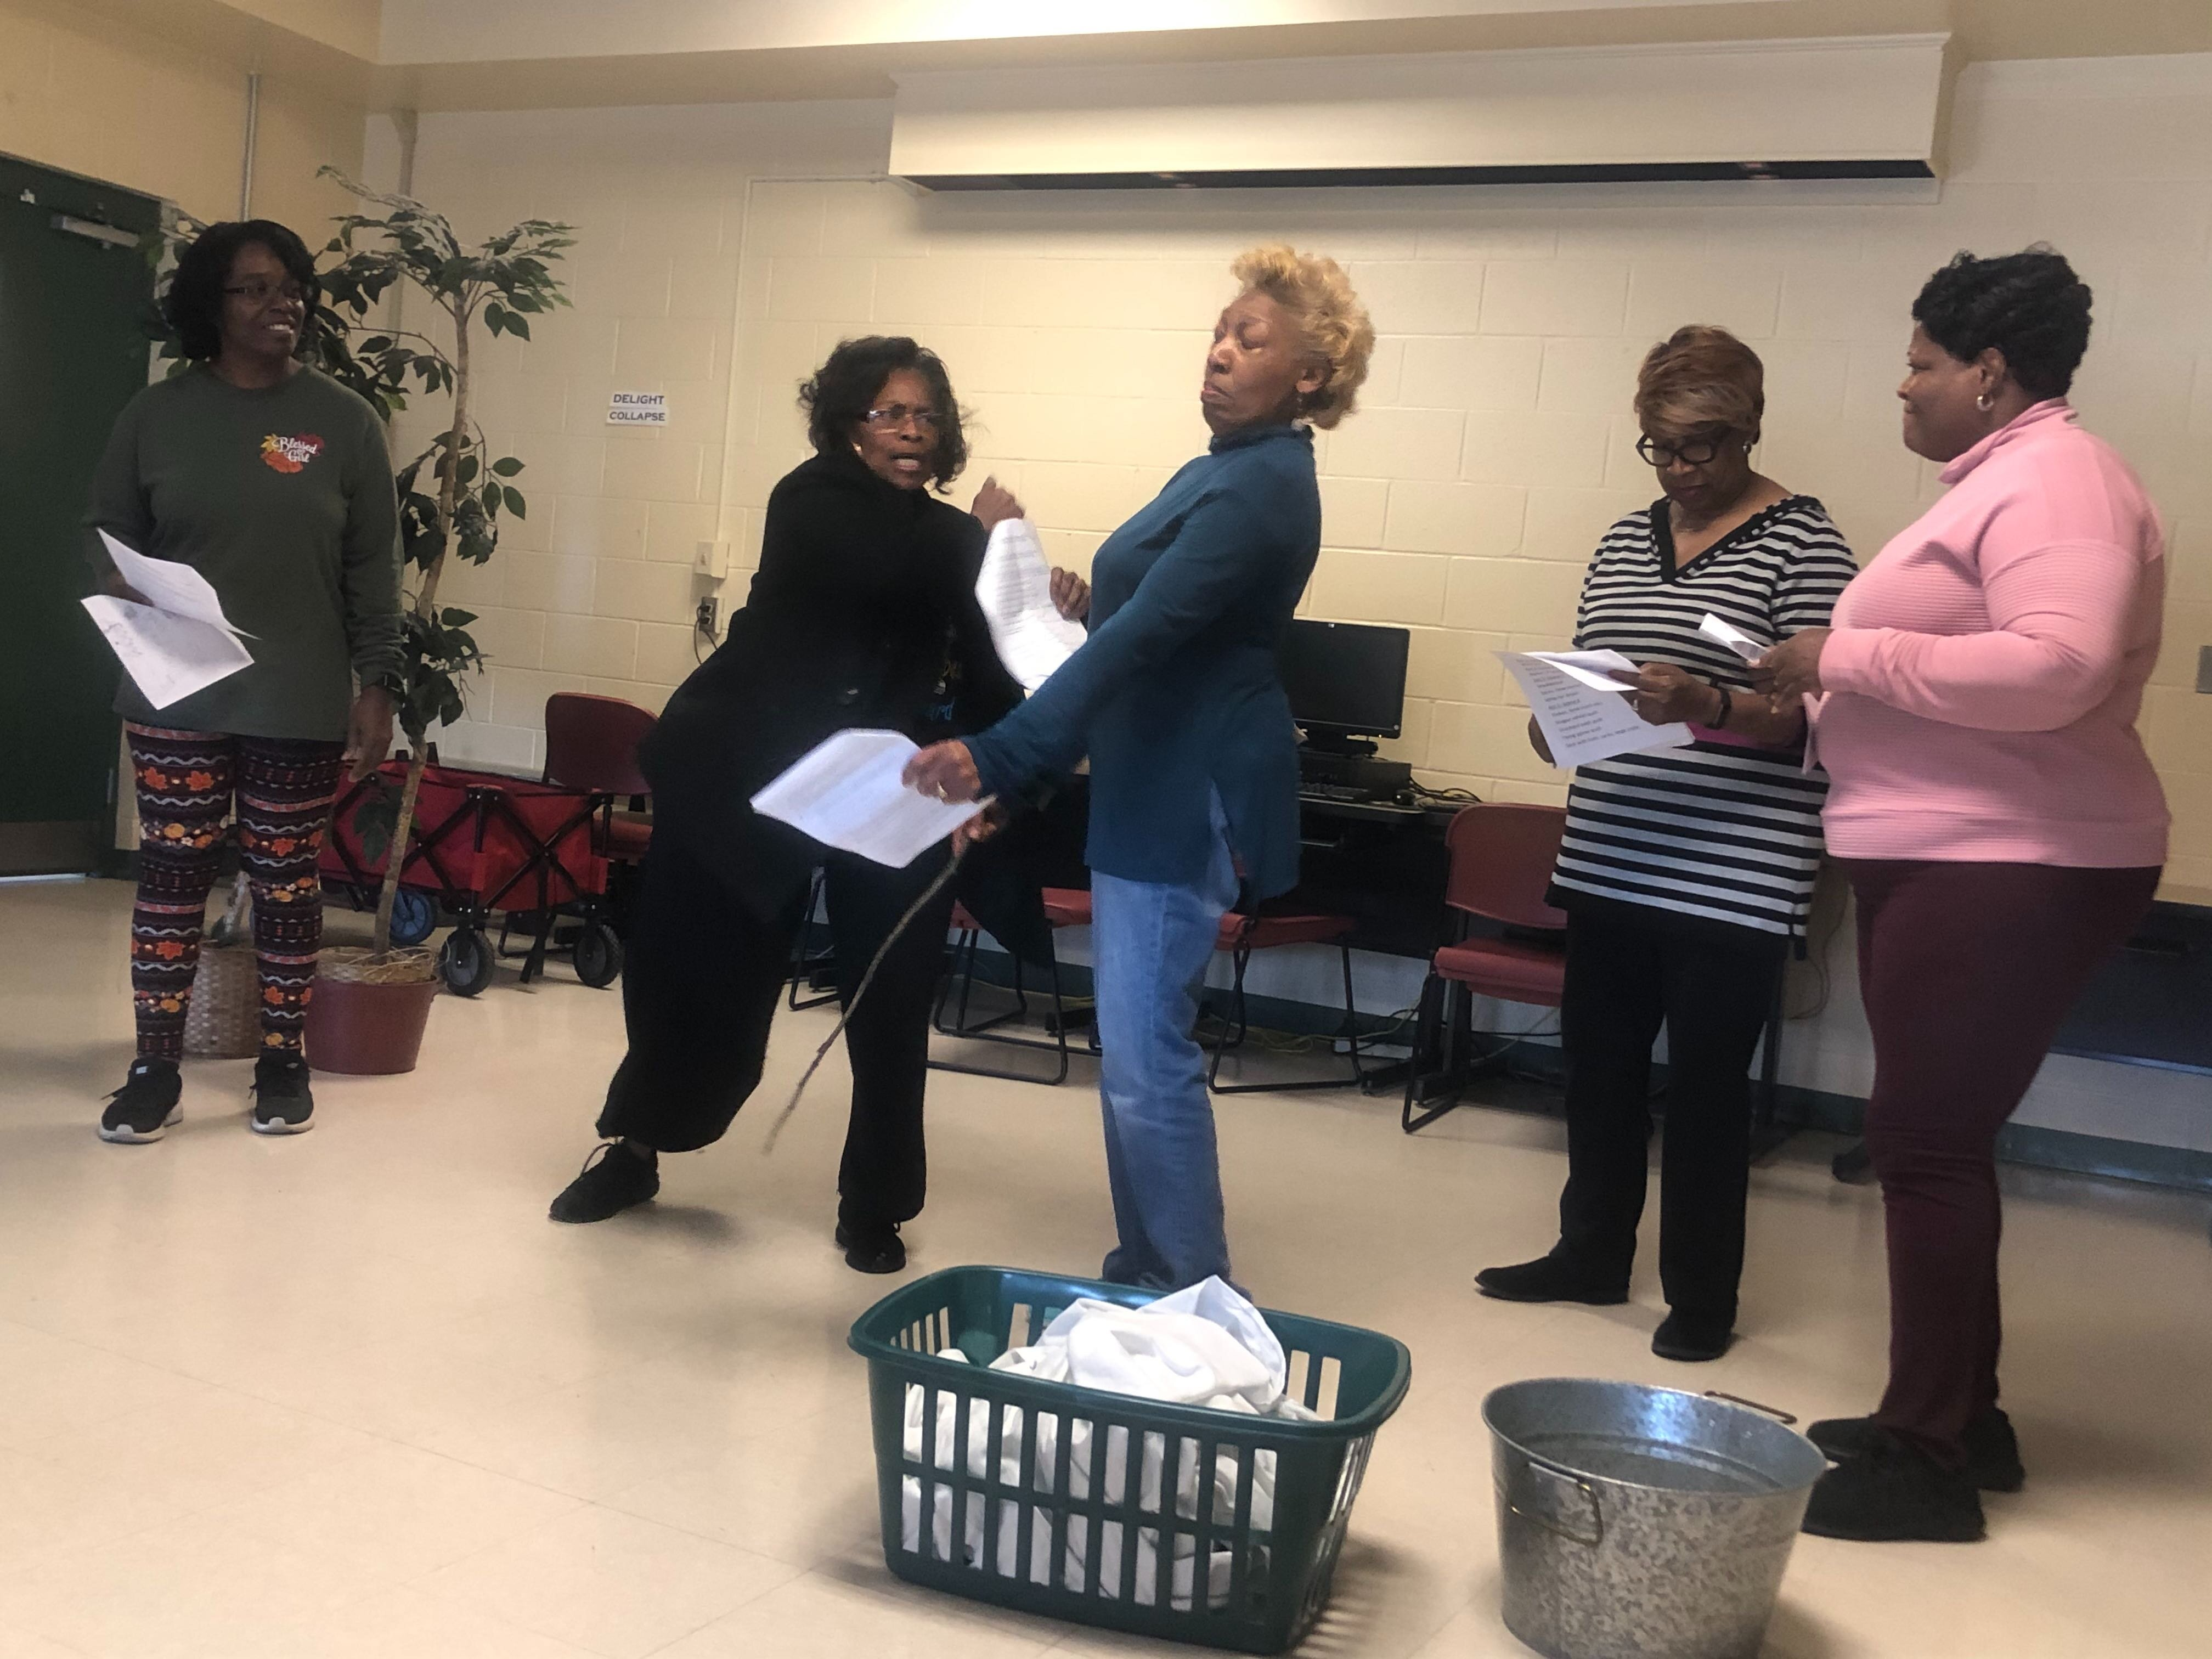 This choreographed slap between two characters will be a powerful moment in the upcoming Black History Month skit performed by the newly formed Hickory Hill Drama Club. (AJ Dugger)